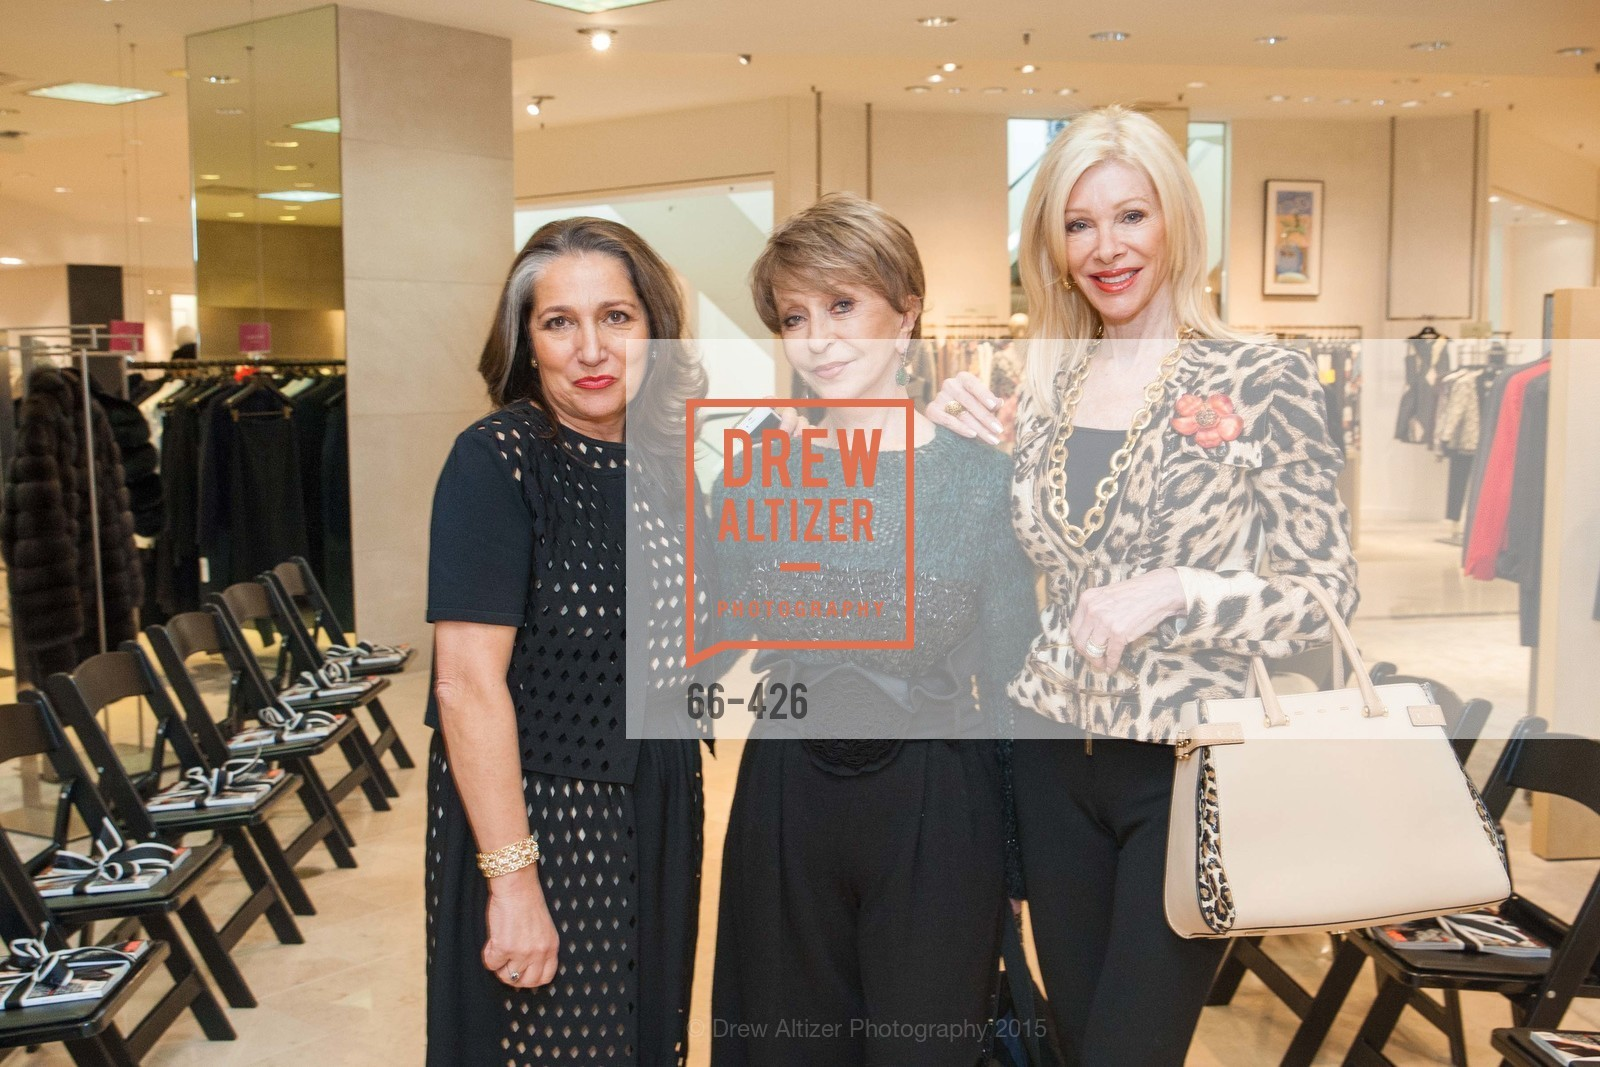 Josephine Kathan, Roberta Sherman, Pamala Deikel, Rindi at Saks Fur Salon, Saks Fifth Avenue, Fur Salon, October 29th, 2015